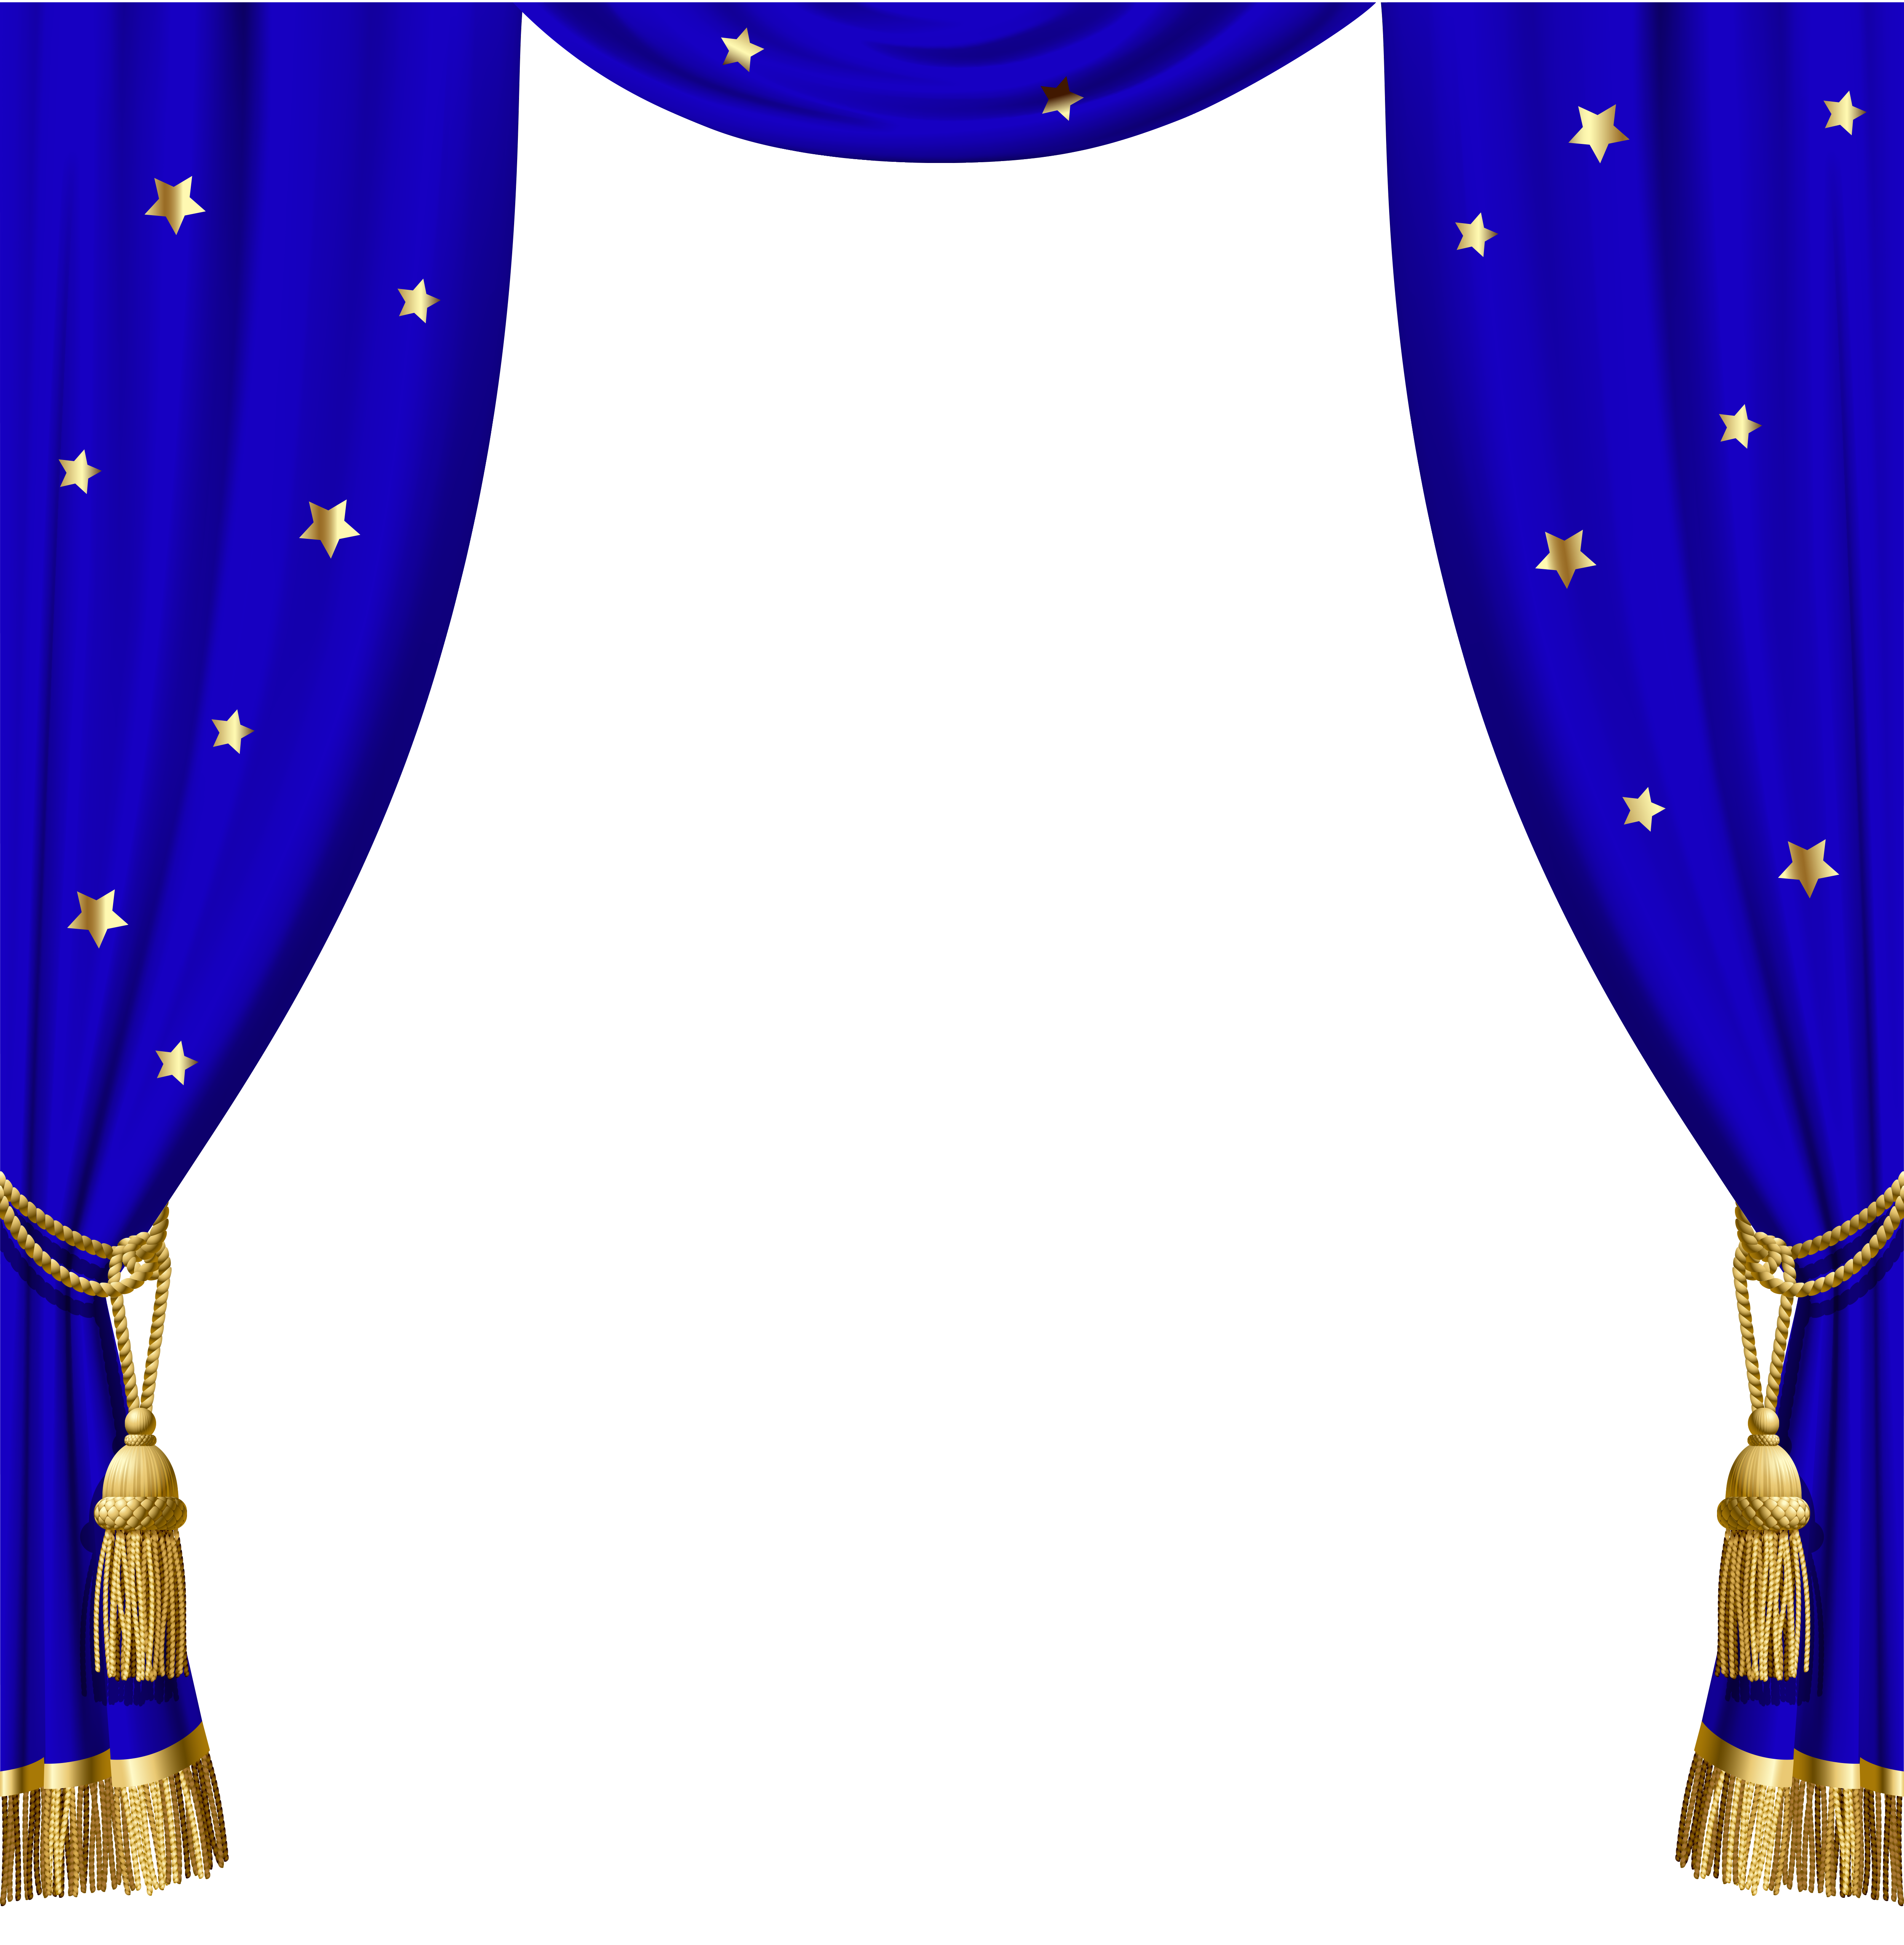 Transparent Blue Curtains with Gold Tassels and Stars